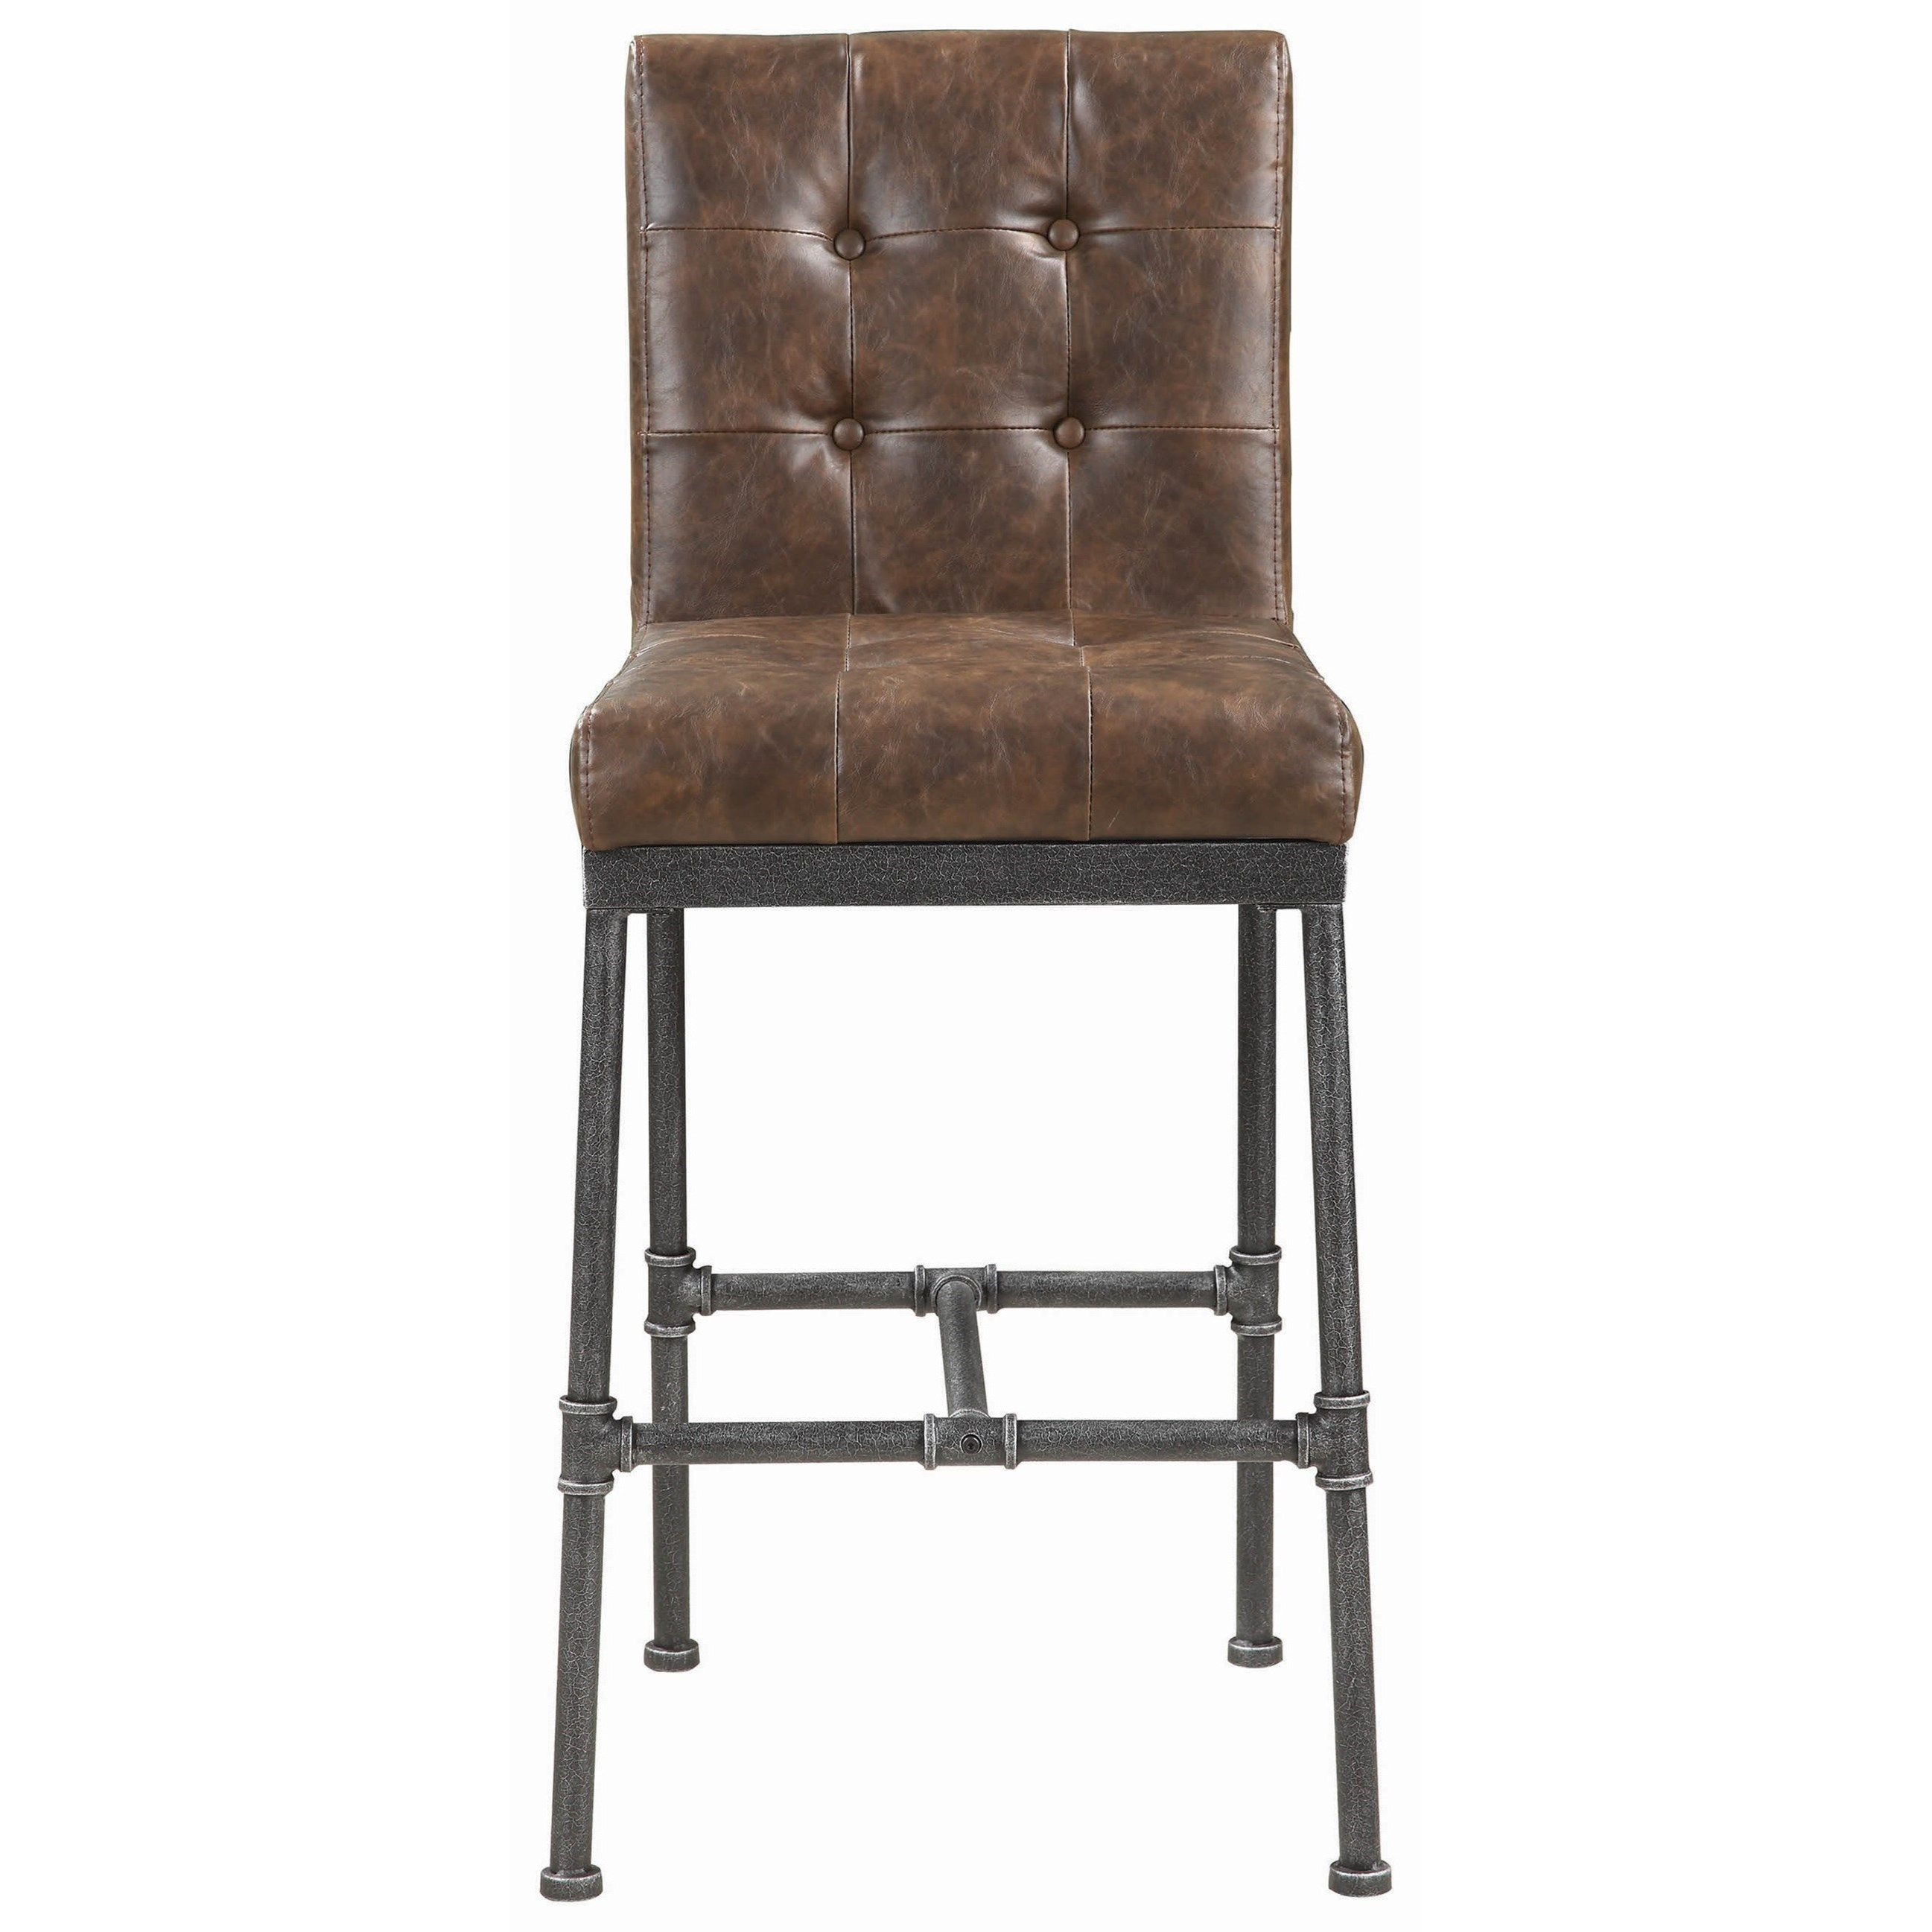 Heaton Bar Stool By Scott Living At Great American Home Store Bar Stools Industrial Bar Stools Bar Furniture